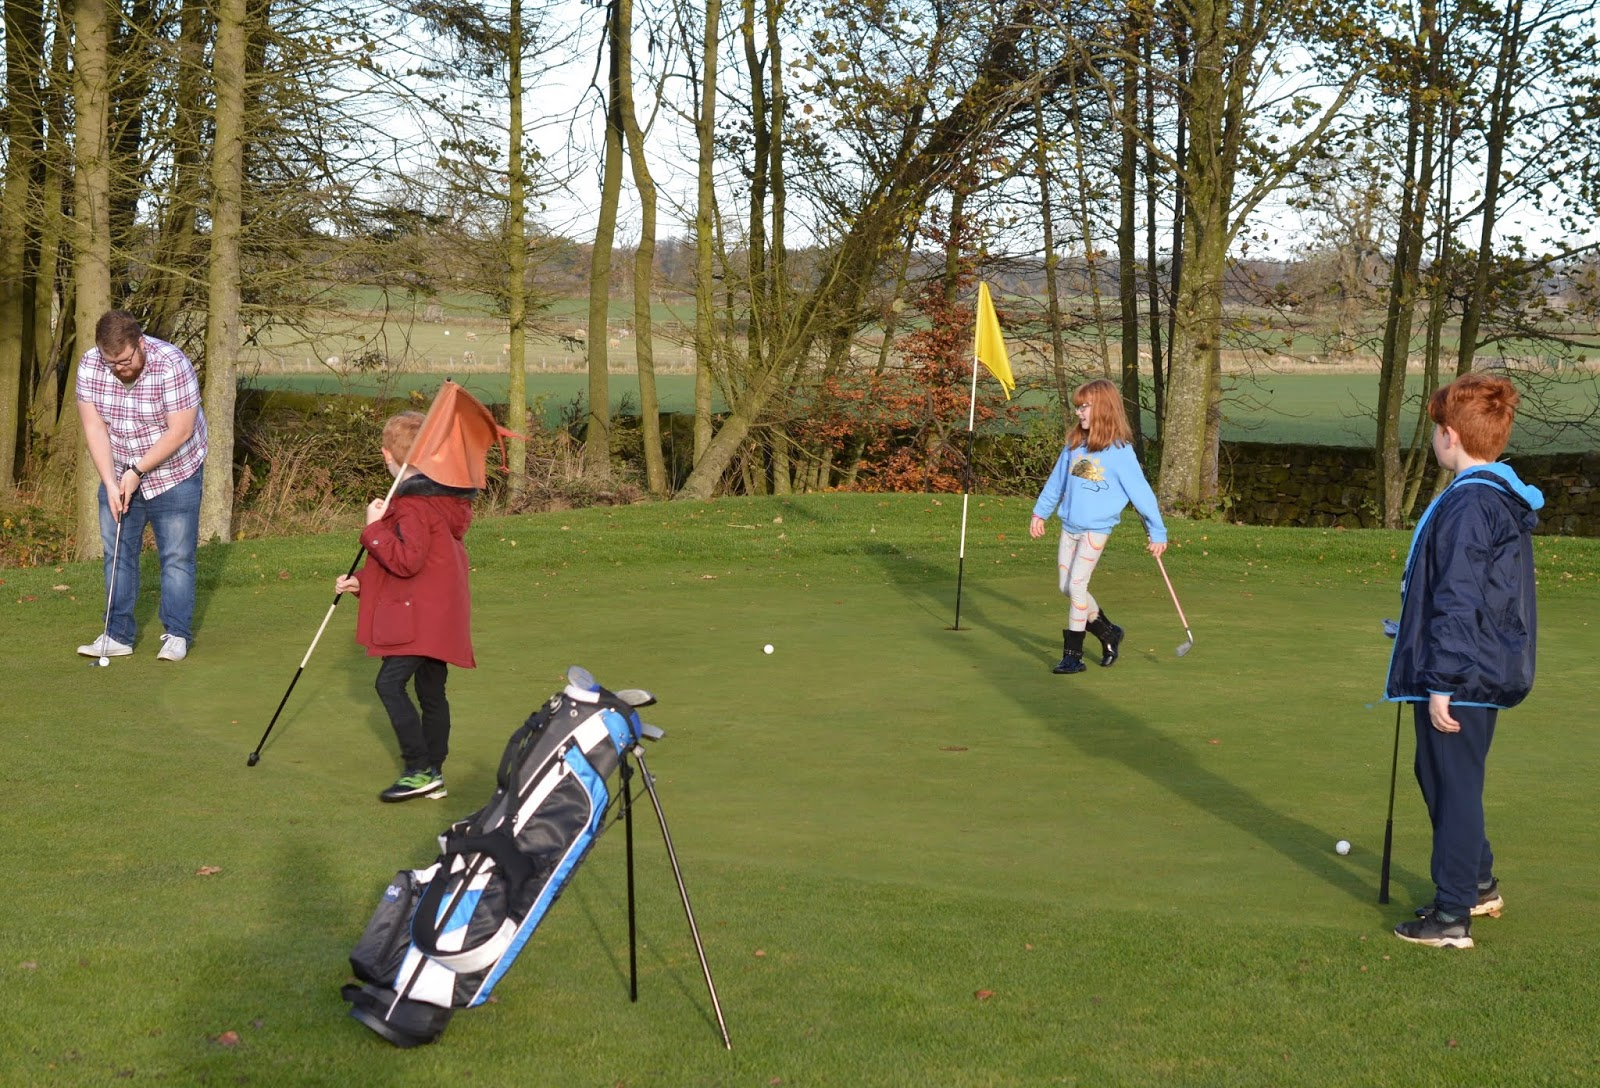 10 Reasons to Stay at Matfen Hall in Northumberland with Kids  - Par 3 golf course with kids